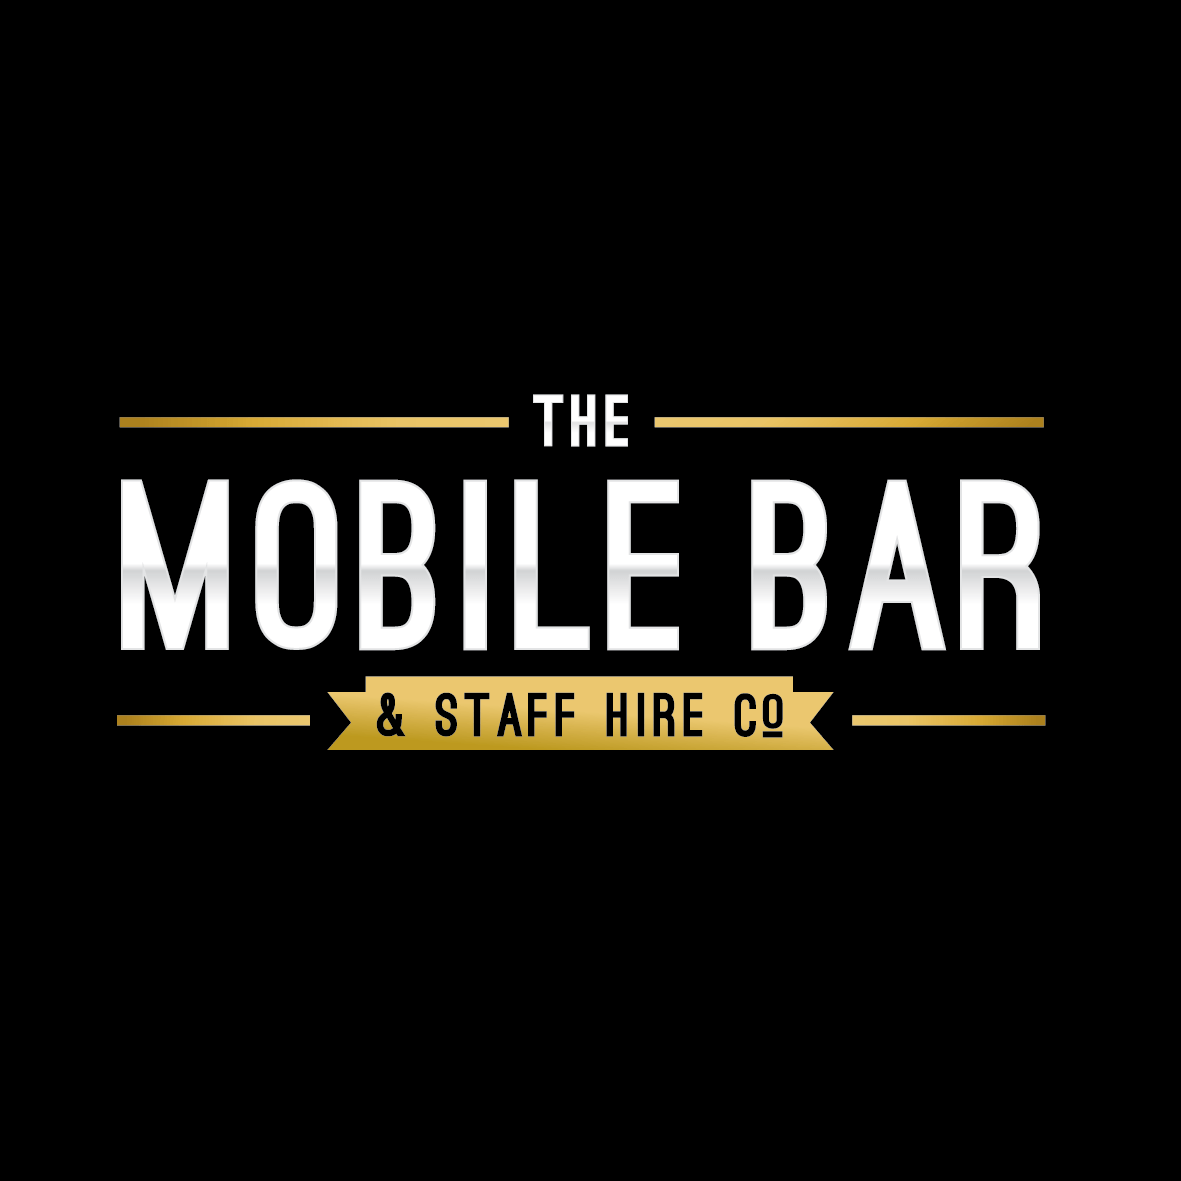 The Mobile Bar Company